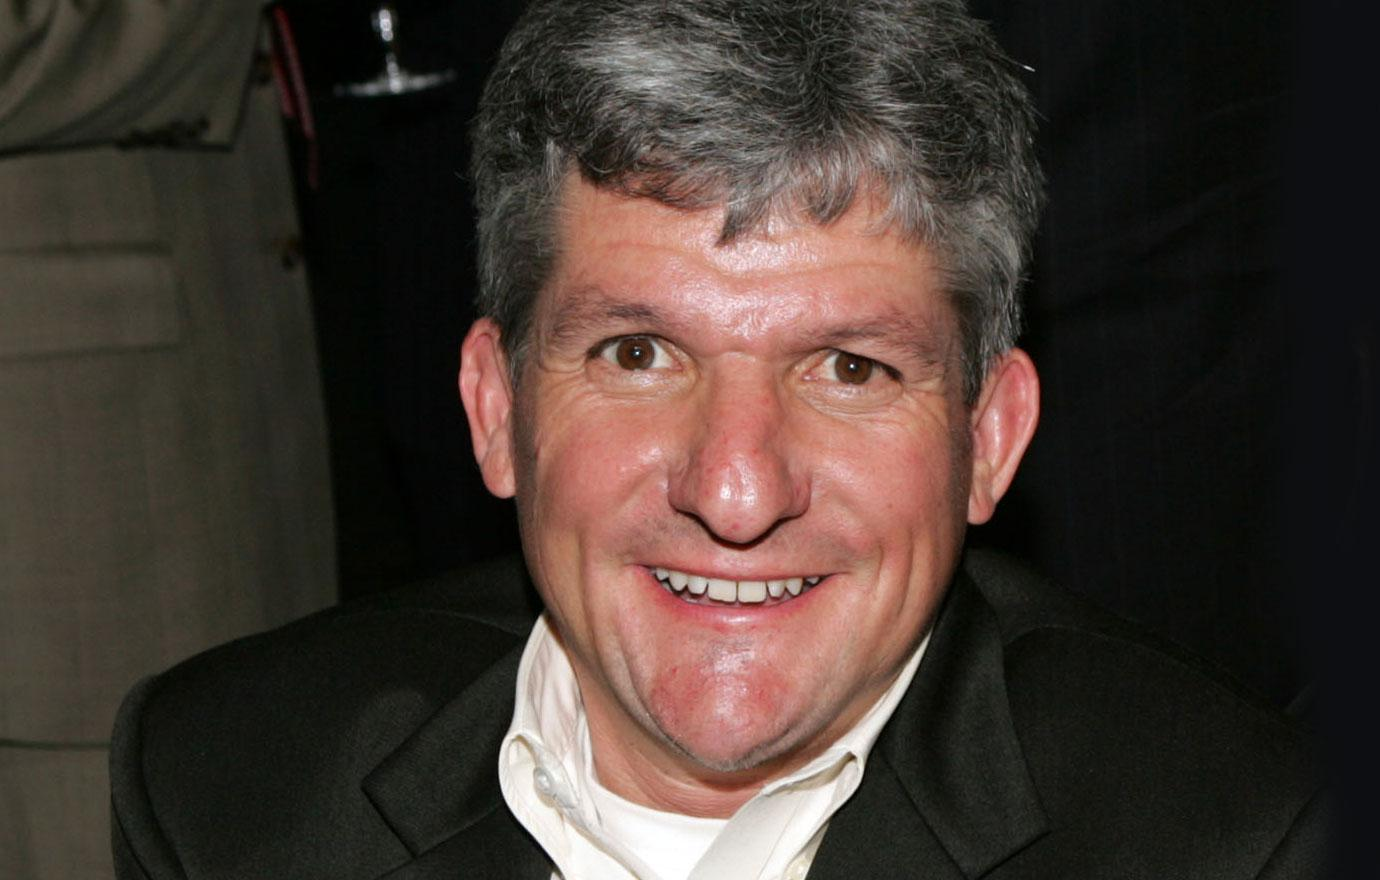 matt-roloff-spends-time-with-galpal-caryn-and-her-two-kids